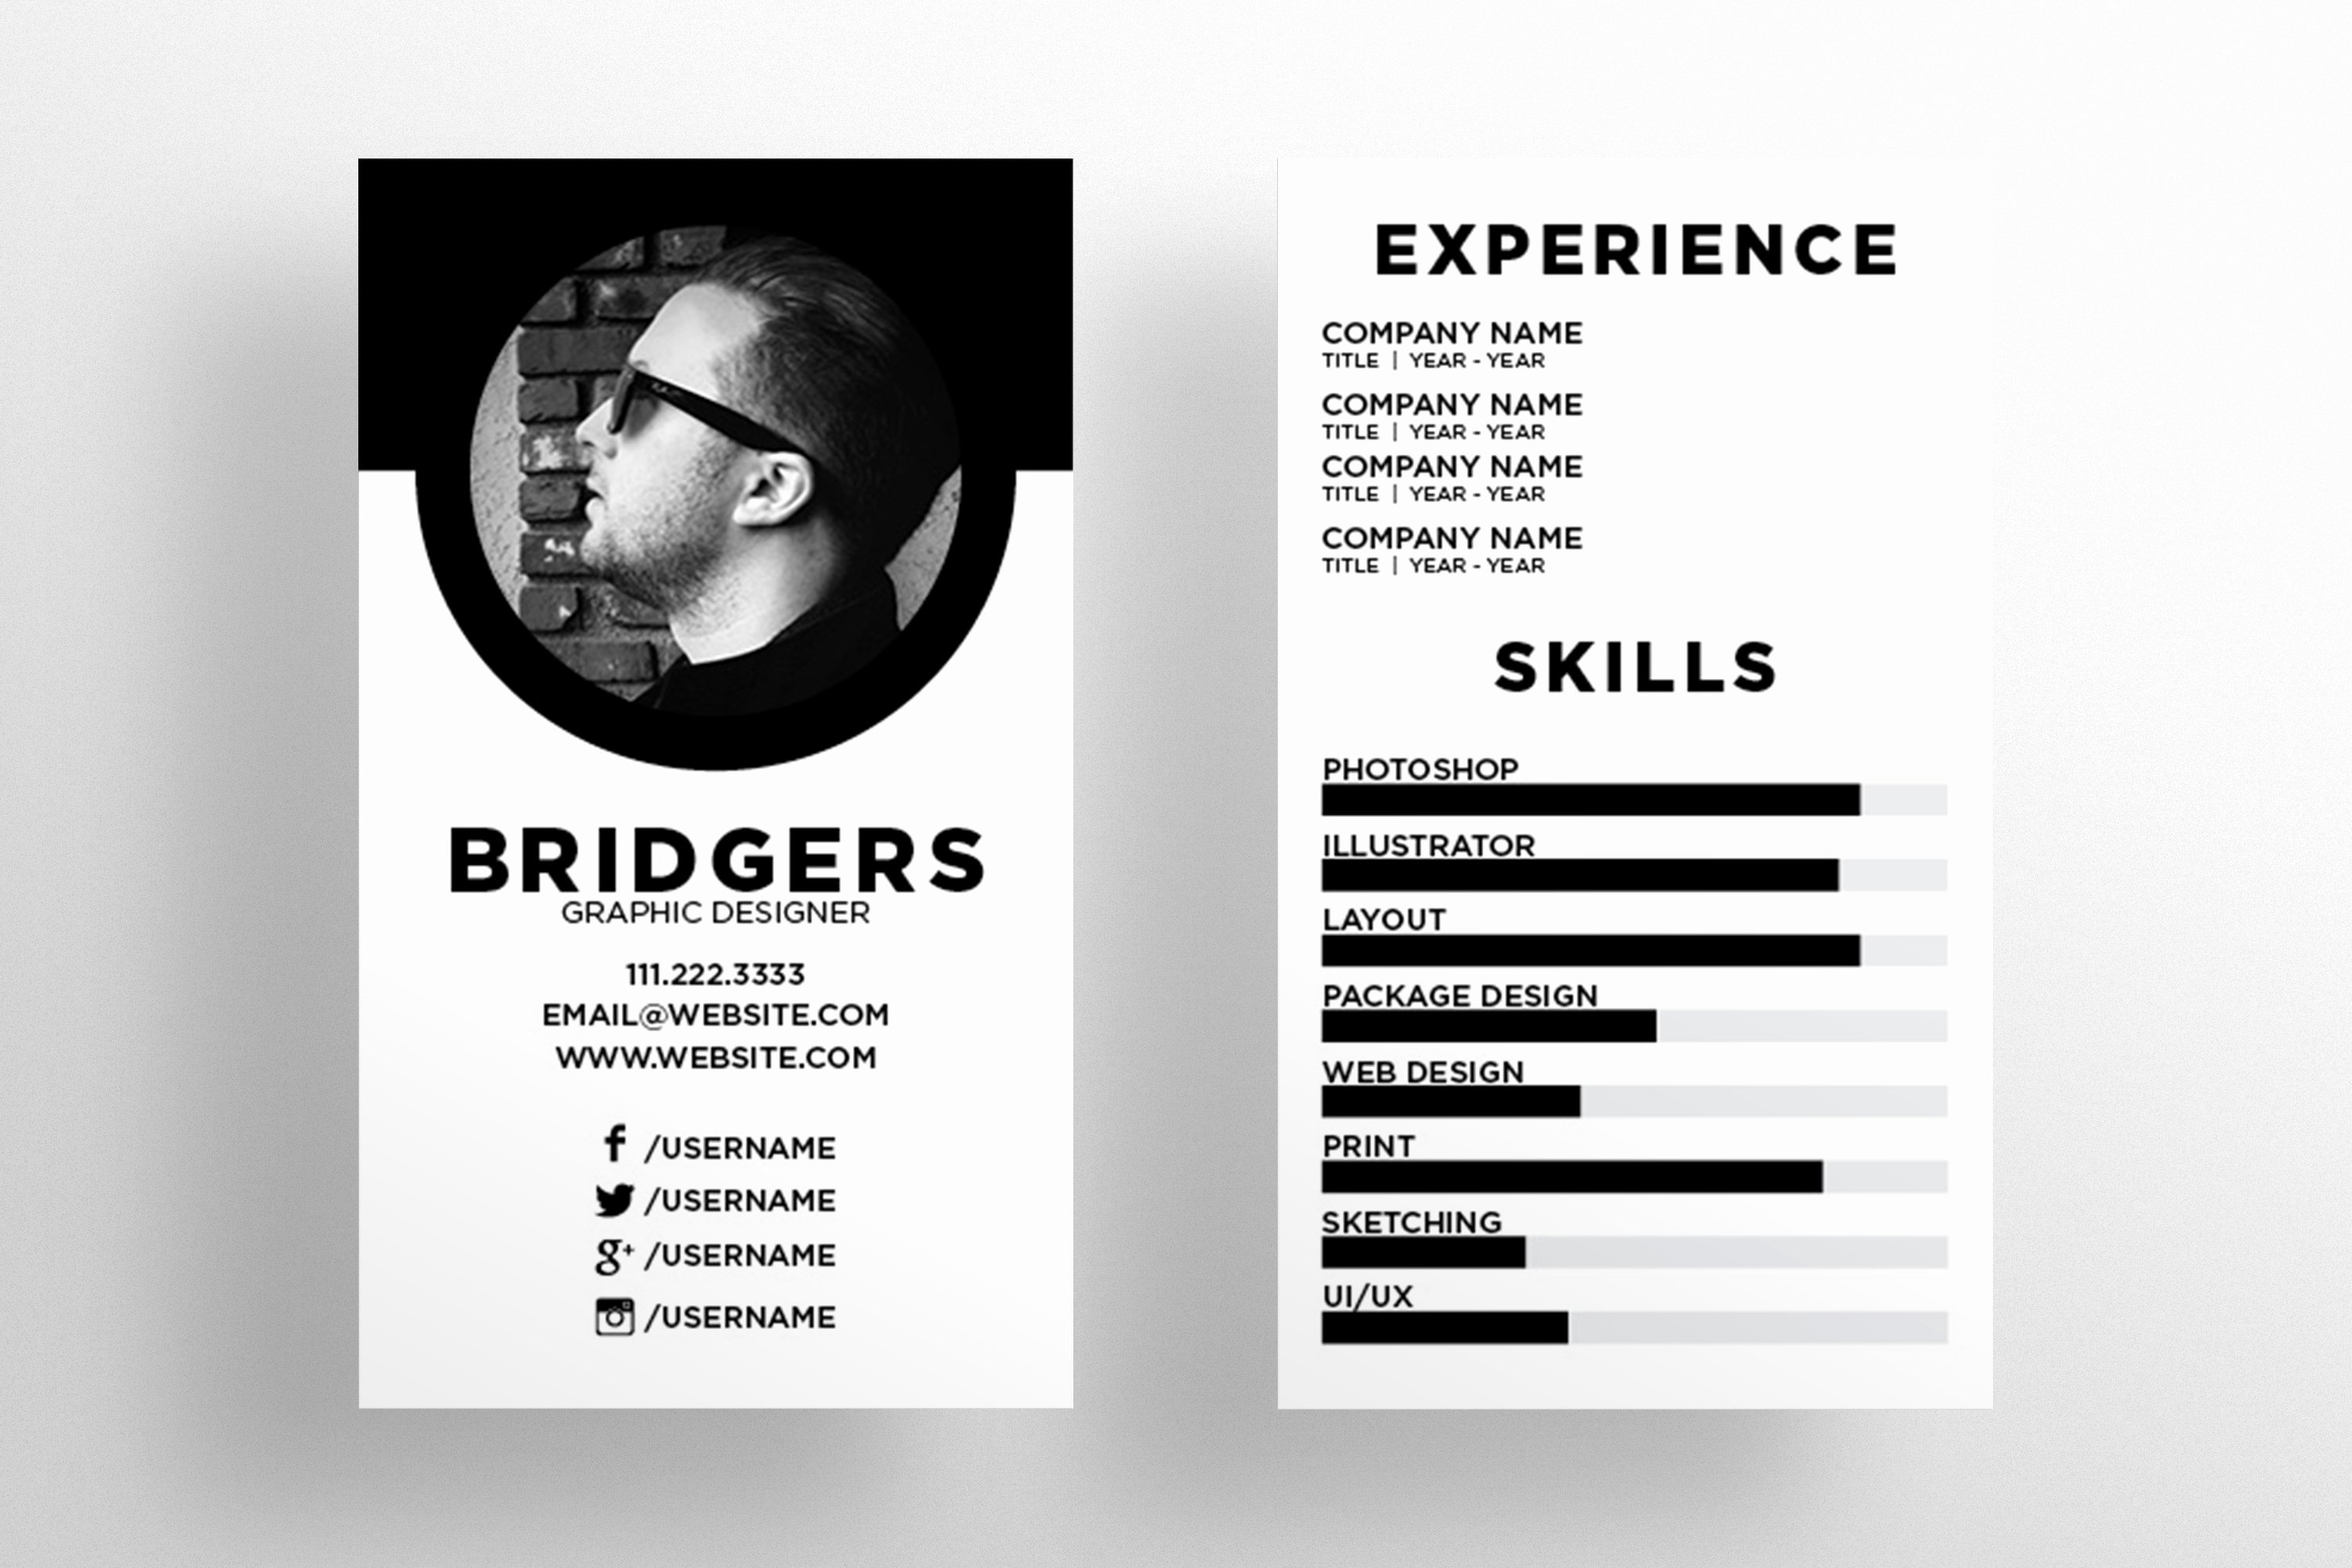 Networking Business Cards Template Fresh the Resume Business Card Template Business Card